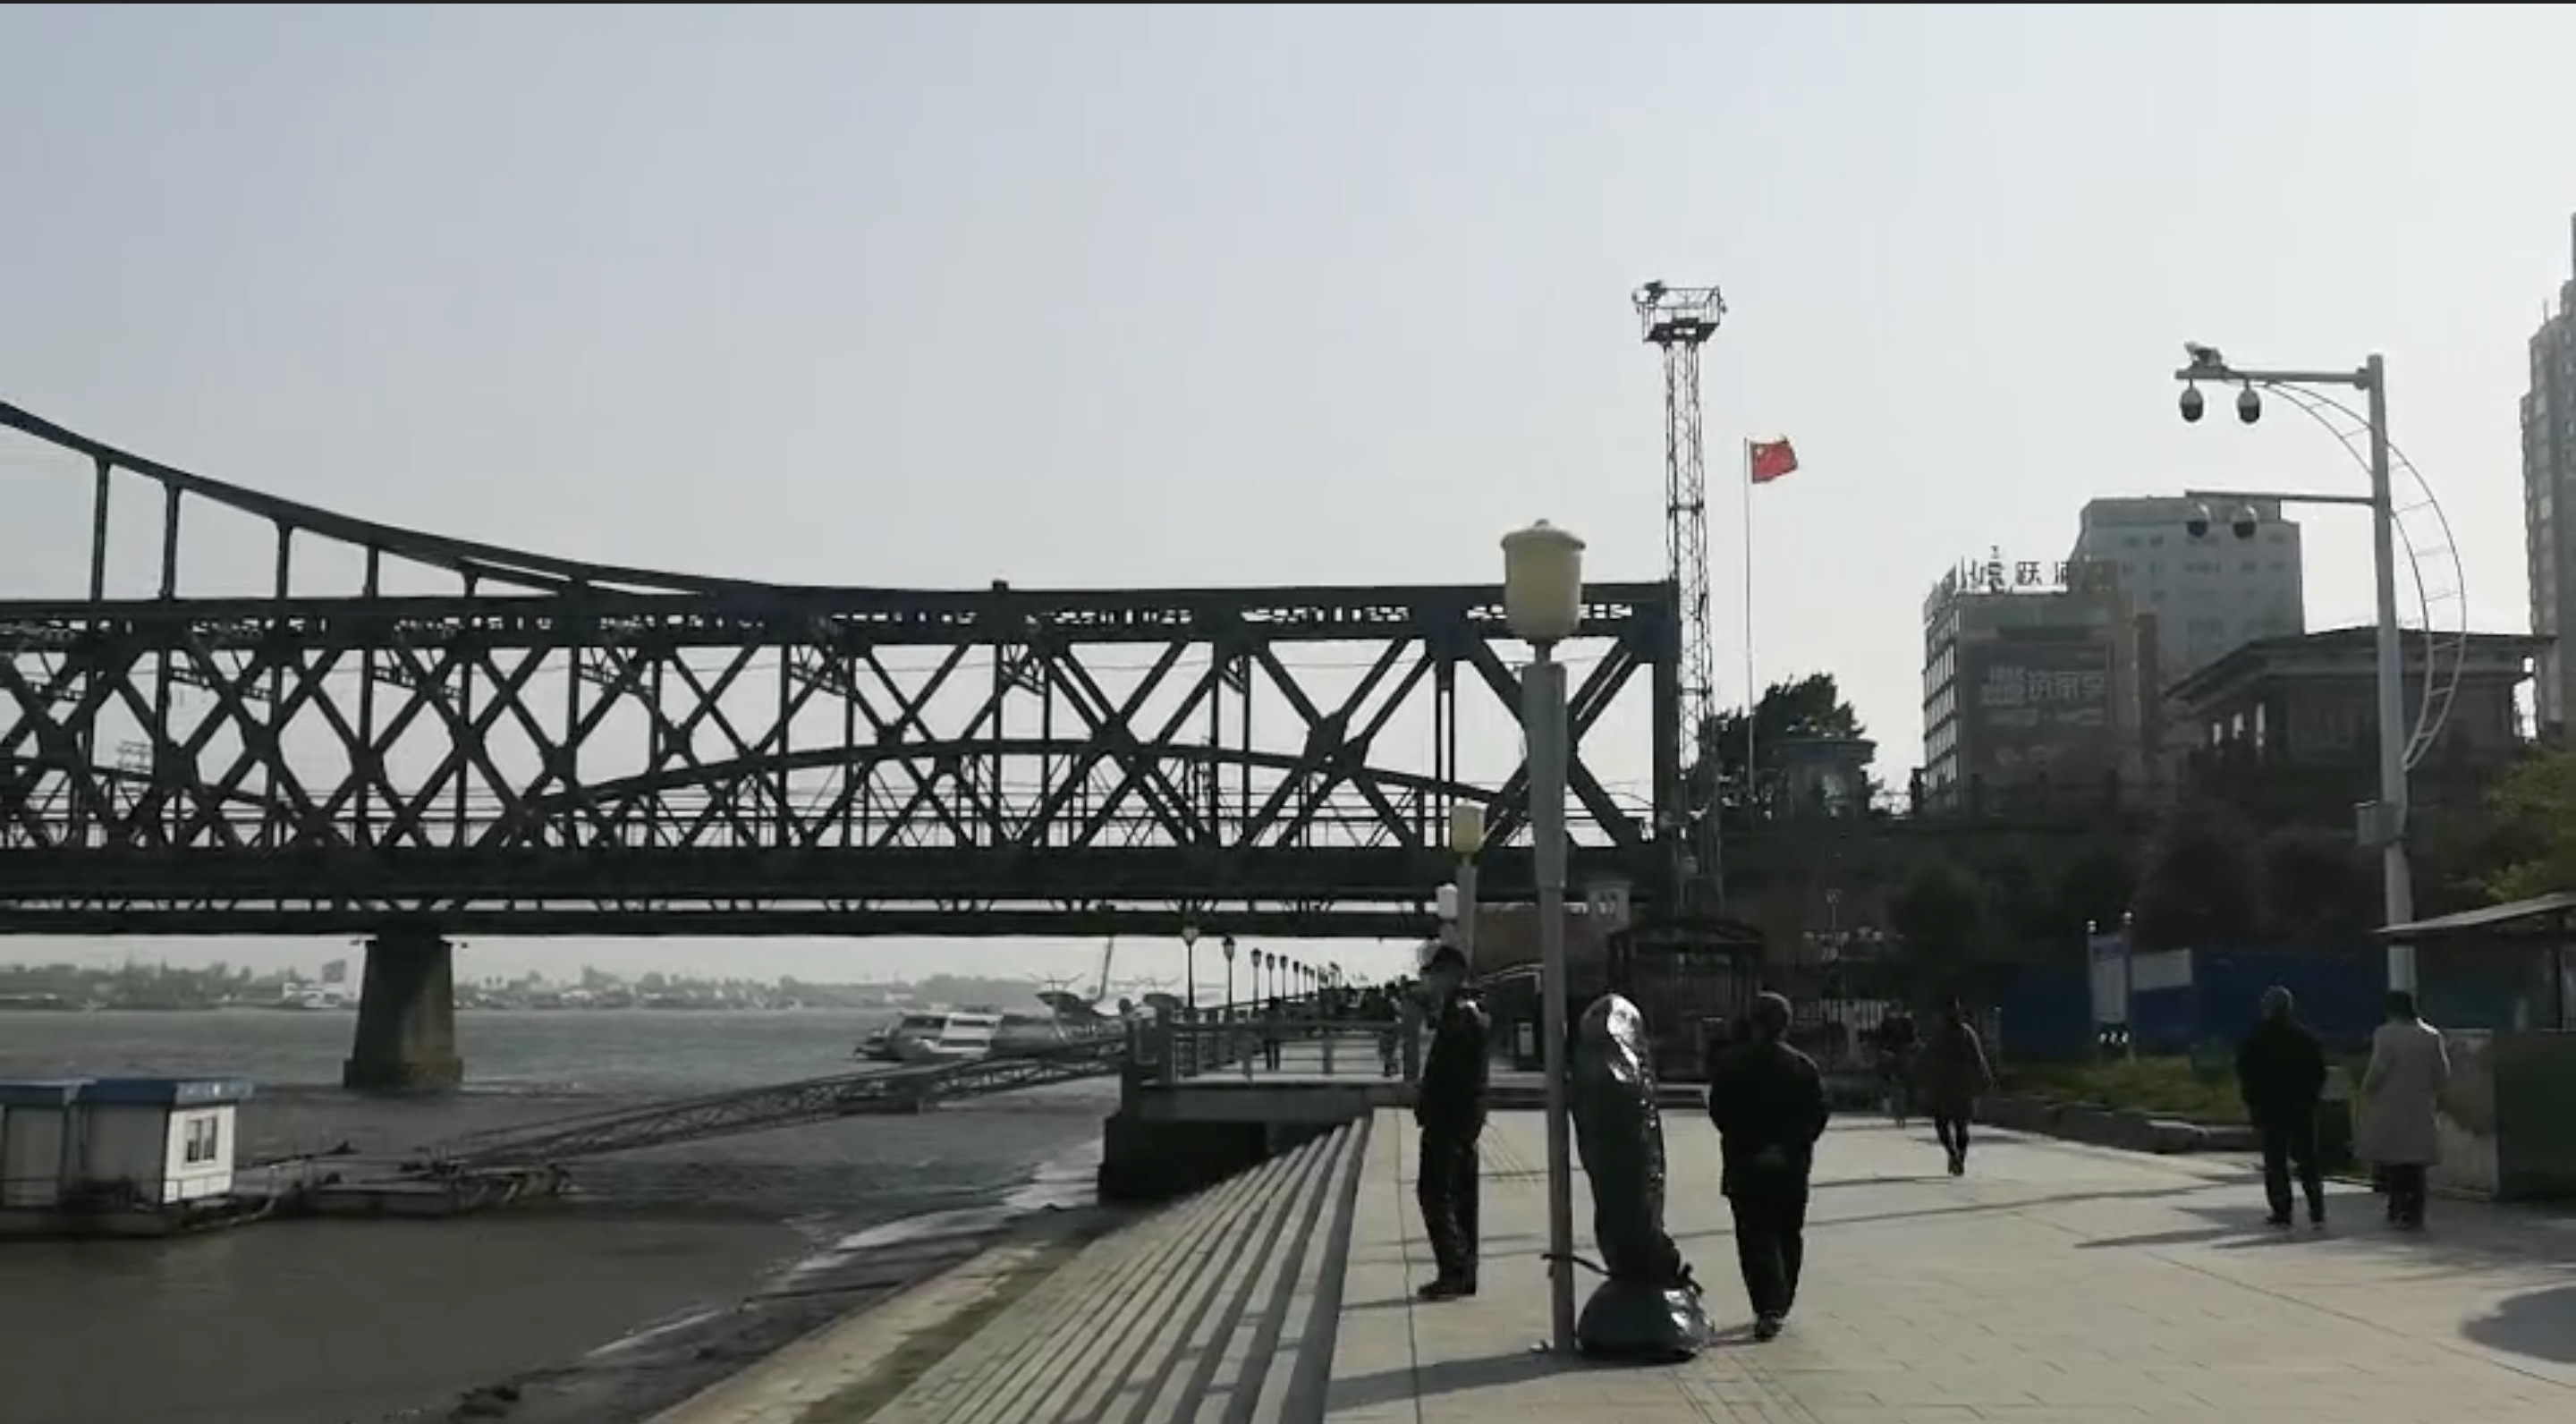 Sino-DPRK border city of Dandong tentatively relaxes COVID-19 measures